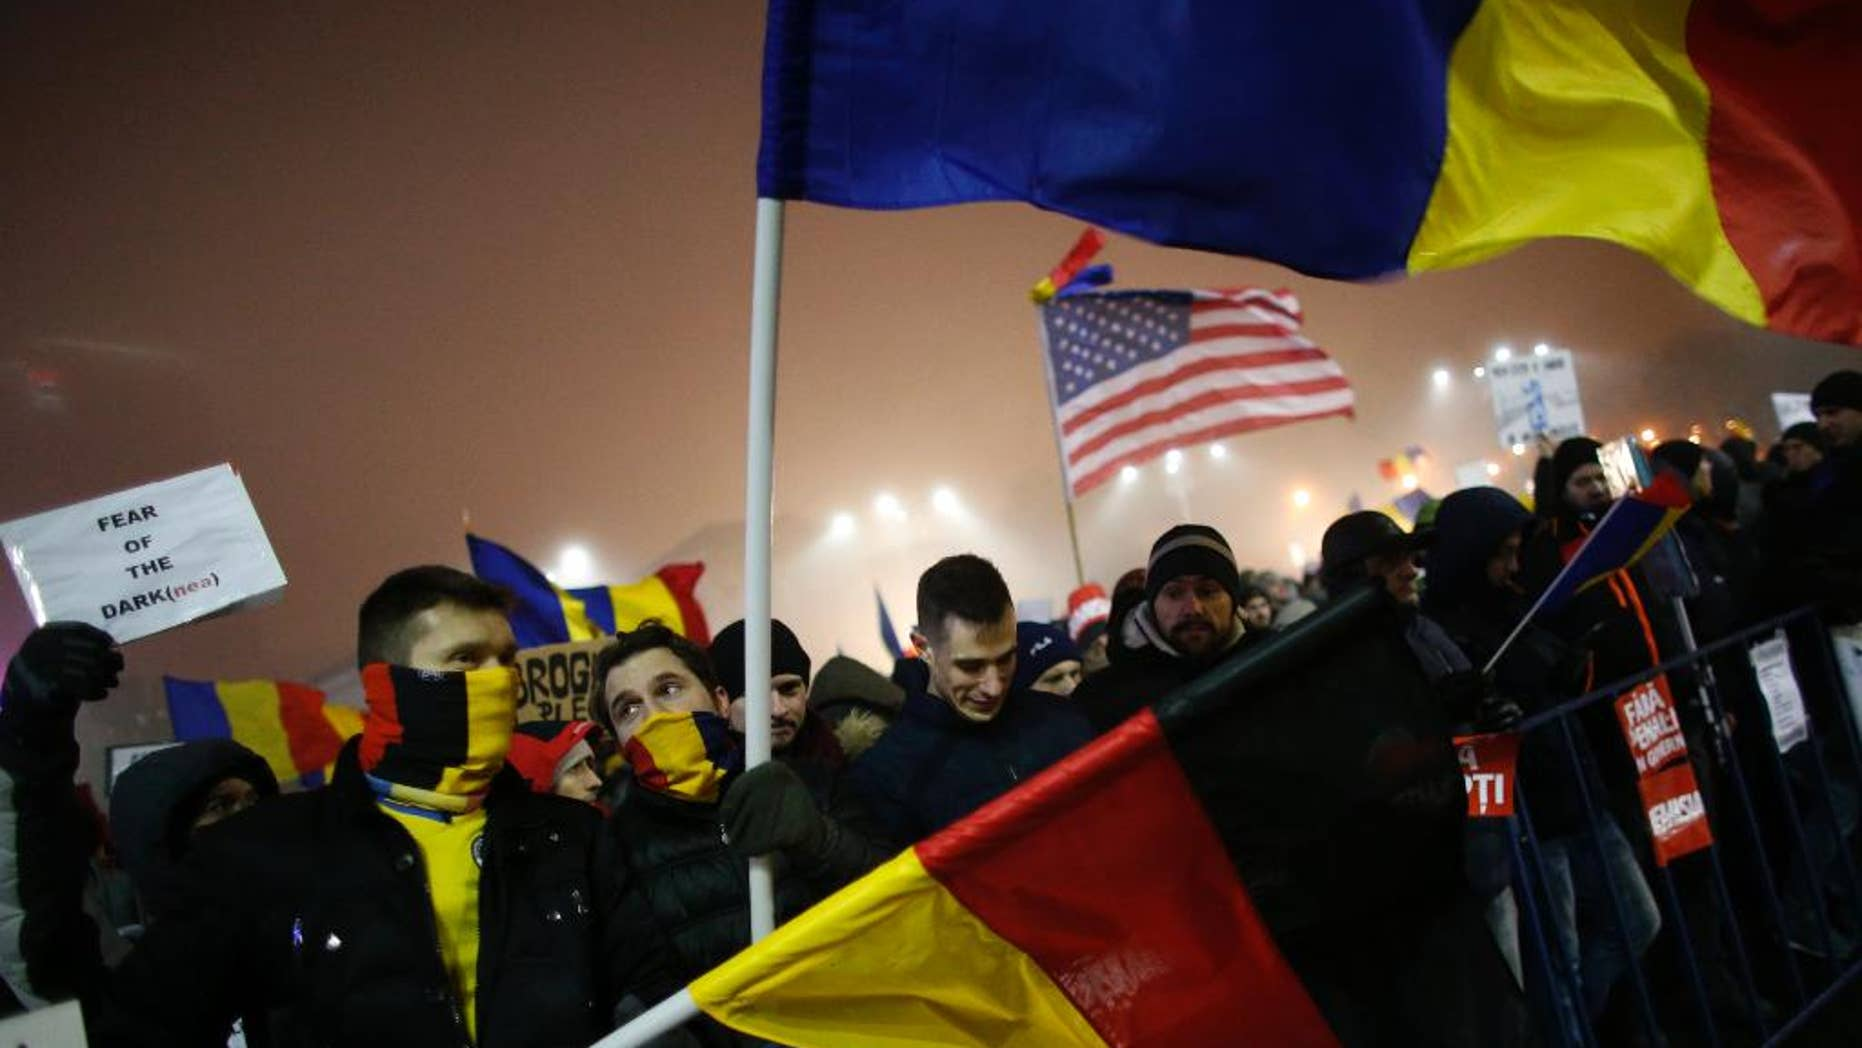 Protesters wave U.S., German and Romanian flags during a protest in Bucharest, Romania, Monday, Feb. 6, 2017. The leader of Romania's ruling center-left coalition said Monday the government won't resign following the biggest demonstrations since the end of communism against a measure that would ease up on corruption. (AP Photo/Darko Bandic)